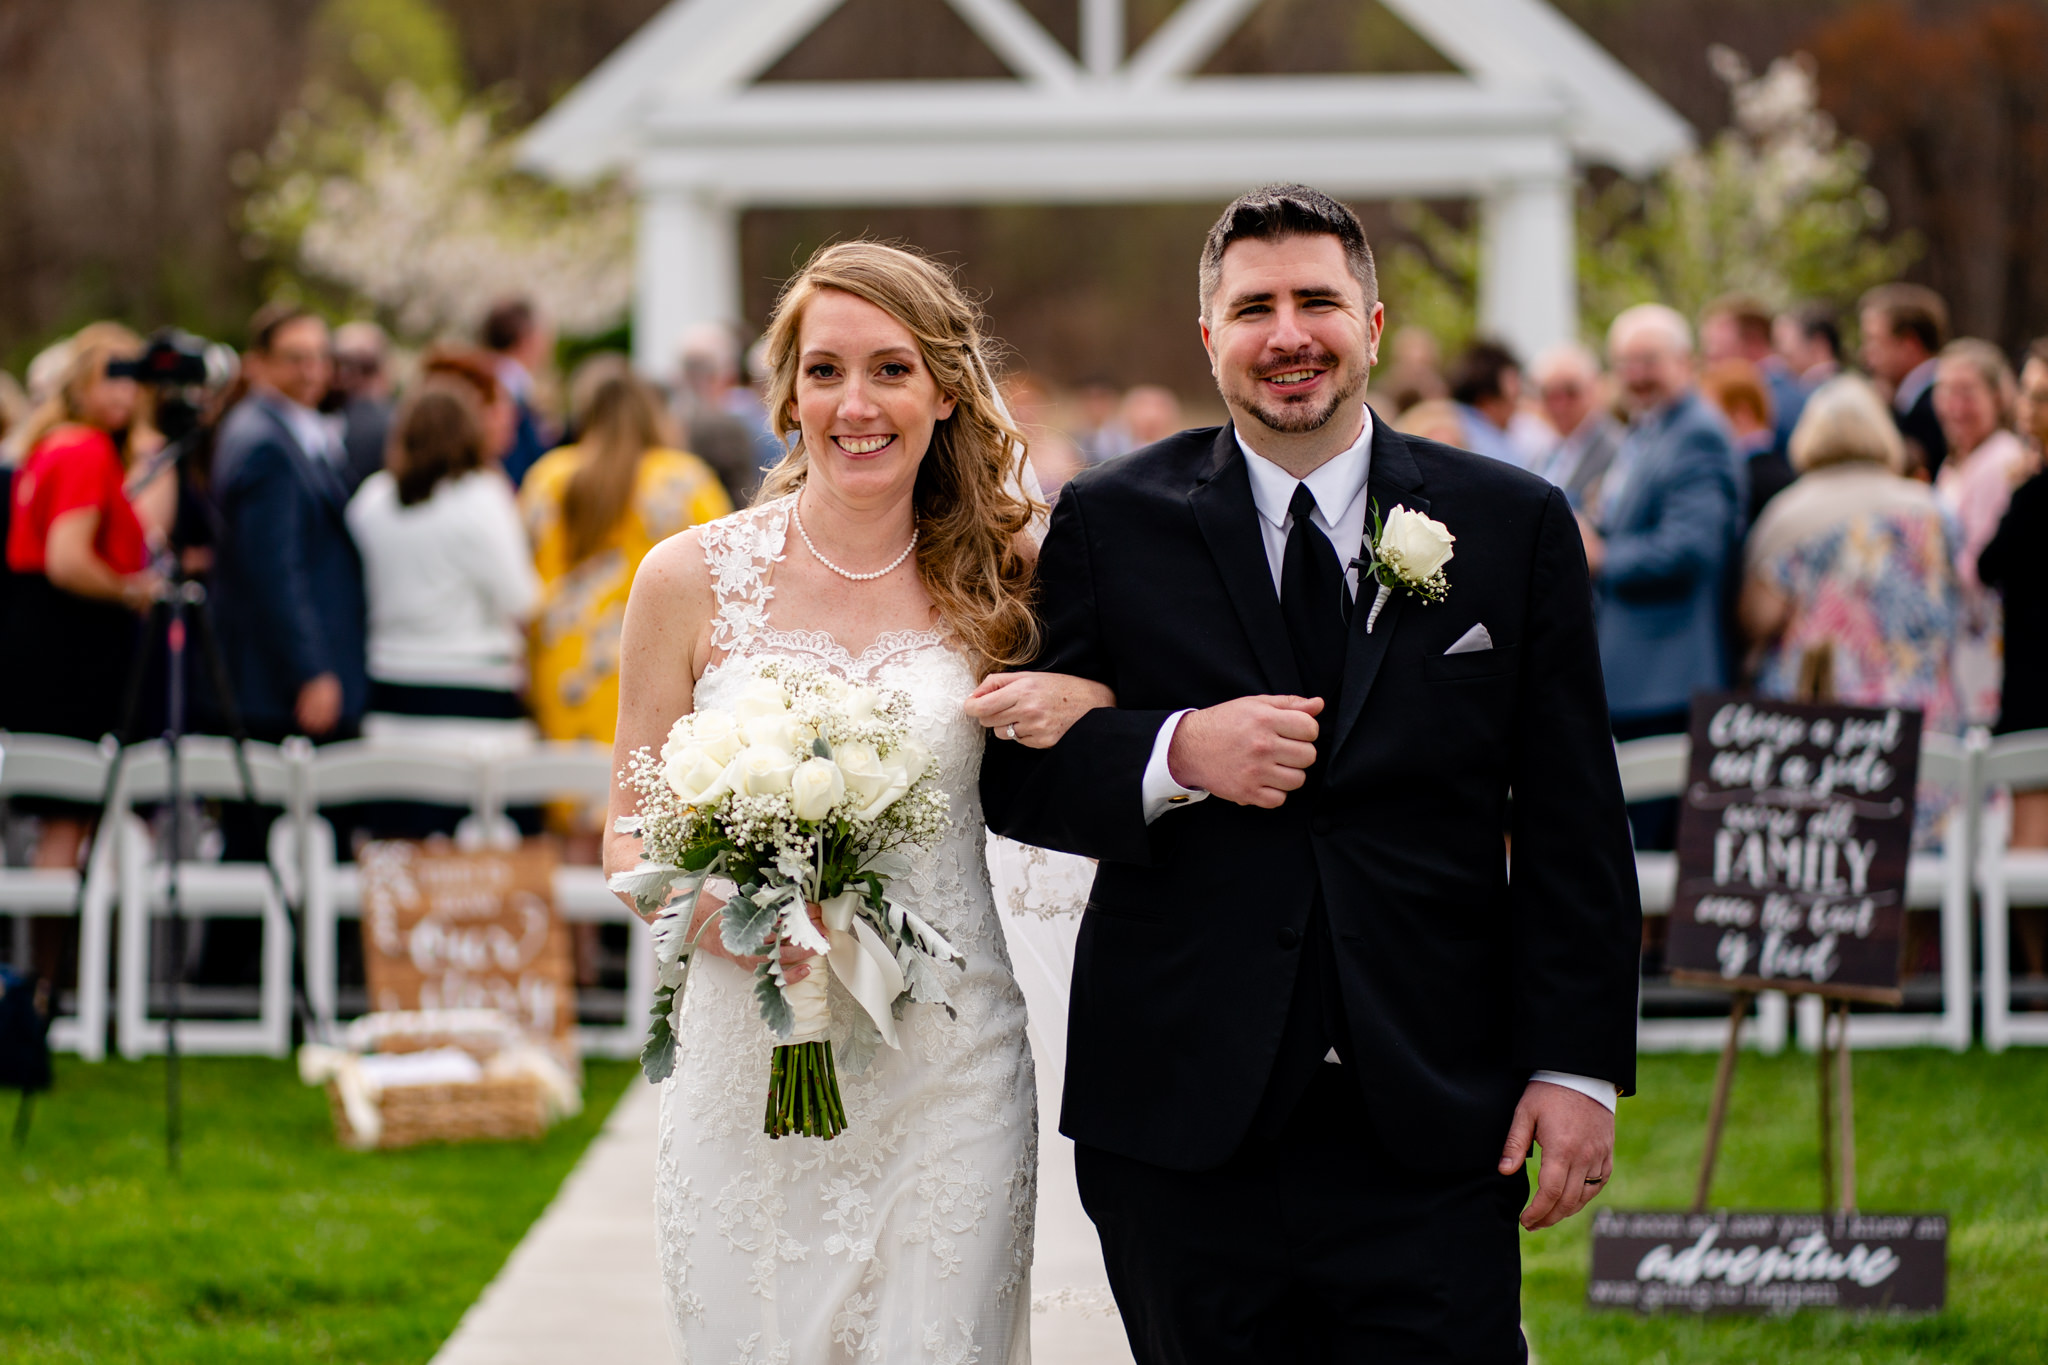 Springfield Manor Winery and Distillery Thornton MD Spring Wedding Photography by Bee Two Sweet-12.jpg